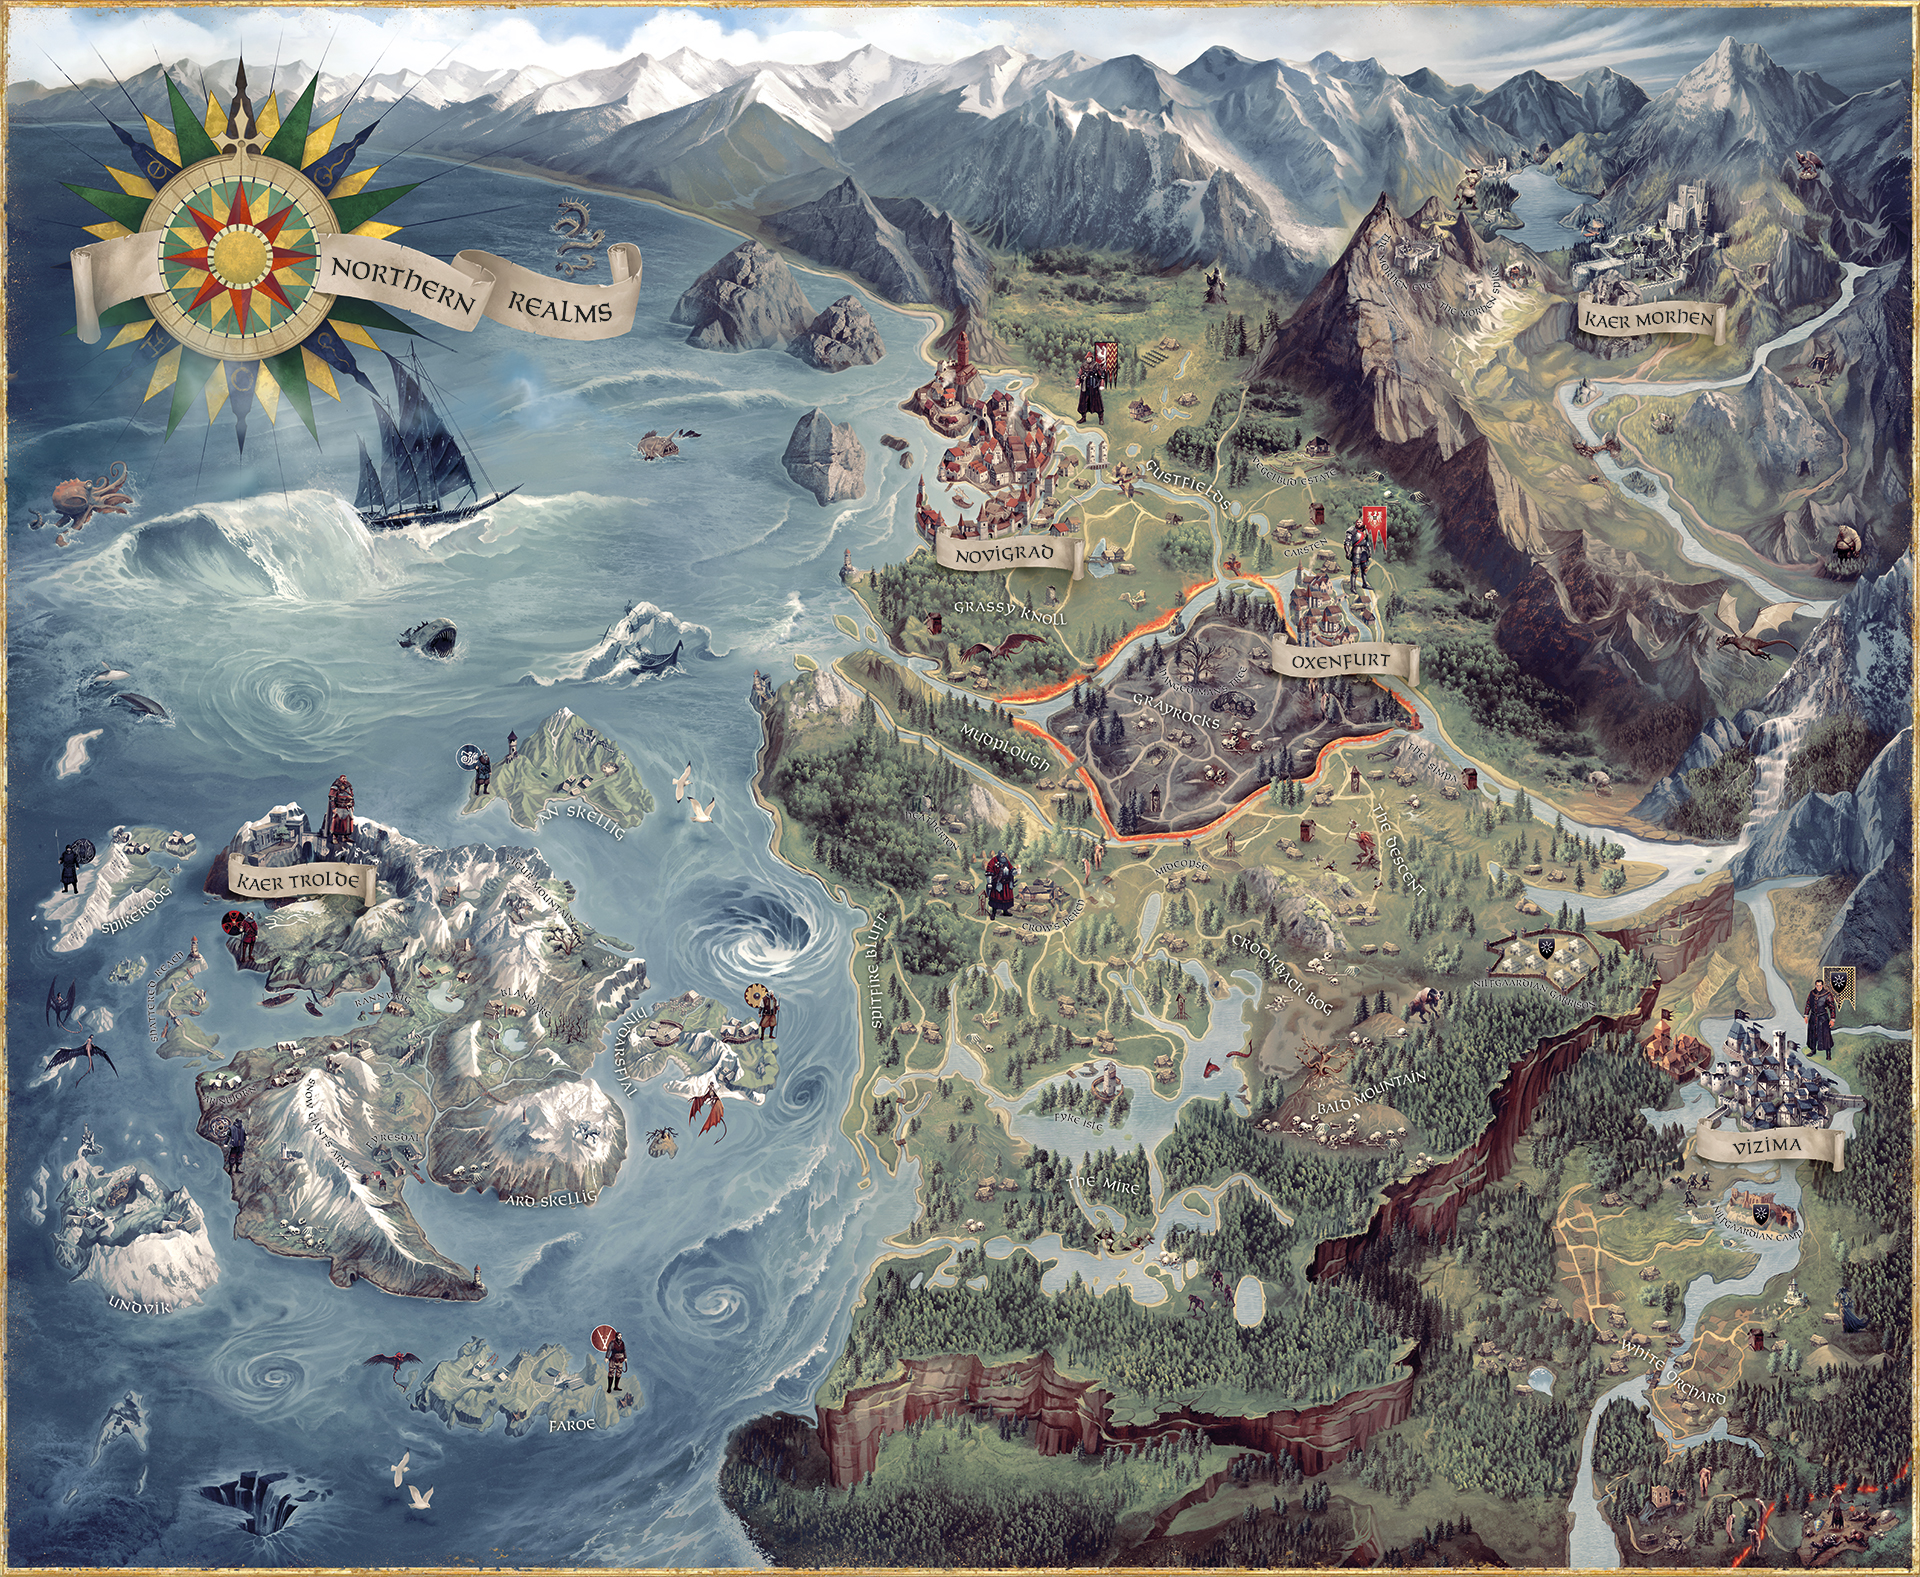 Kunstwerk The Witcher 3 World Map | The Witcher 3 | CD Projekt Red